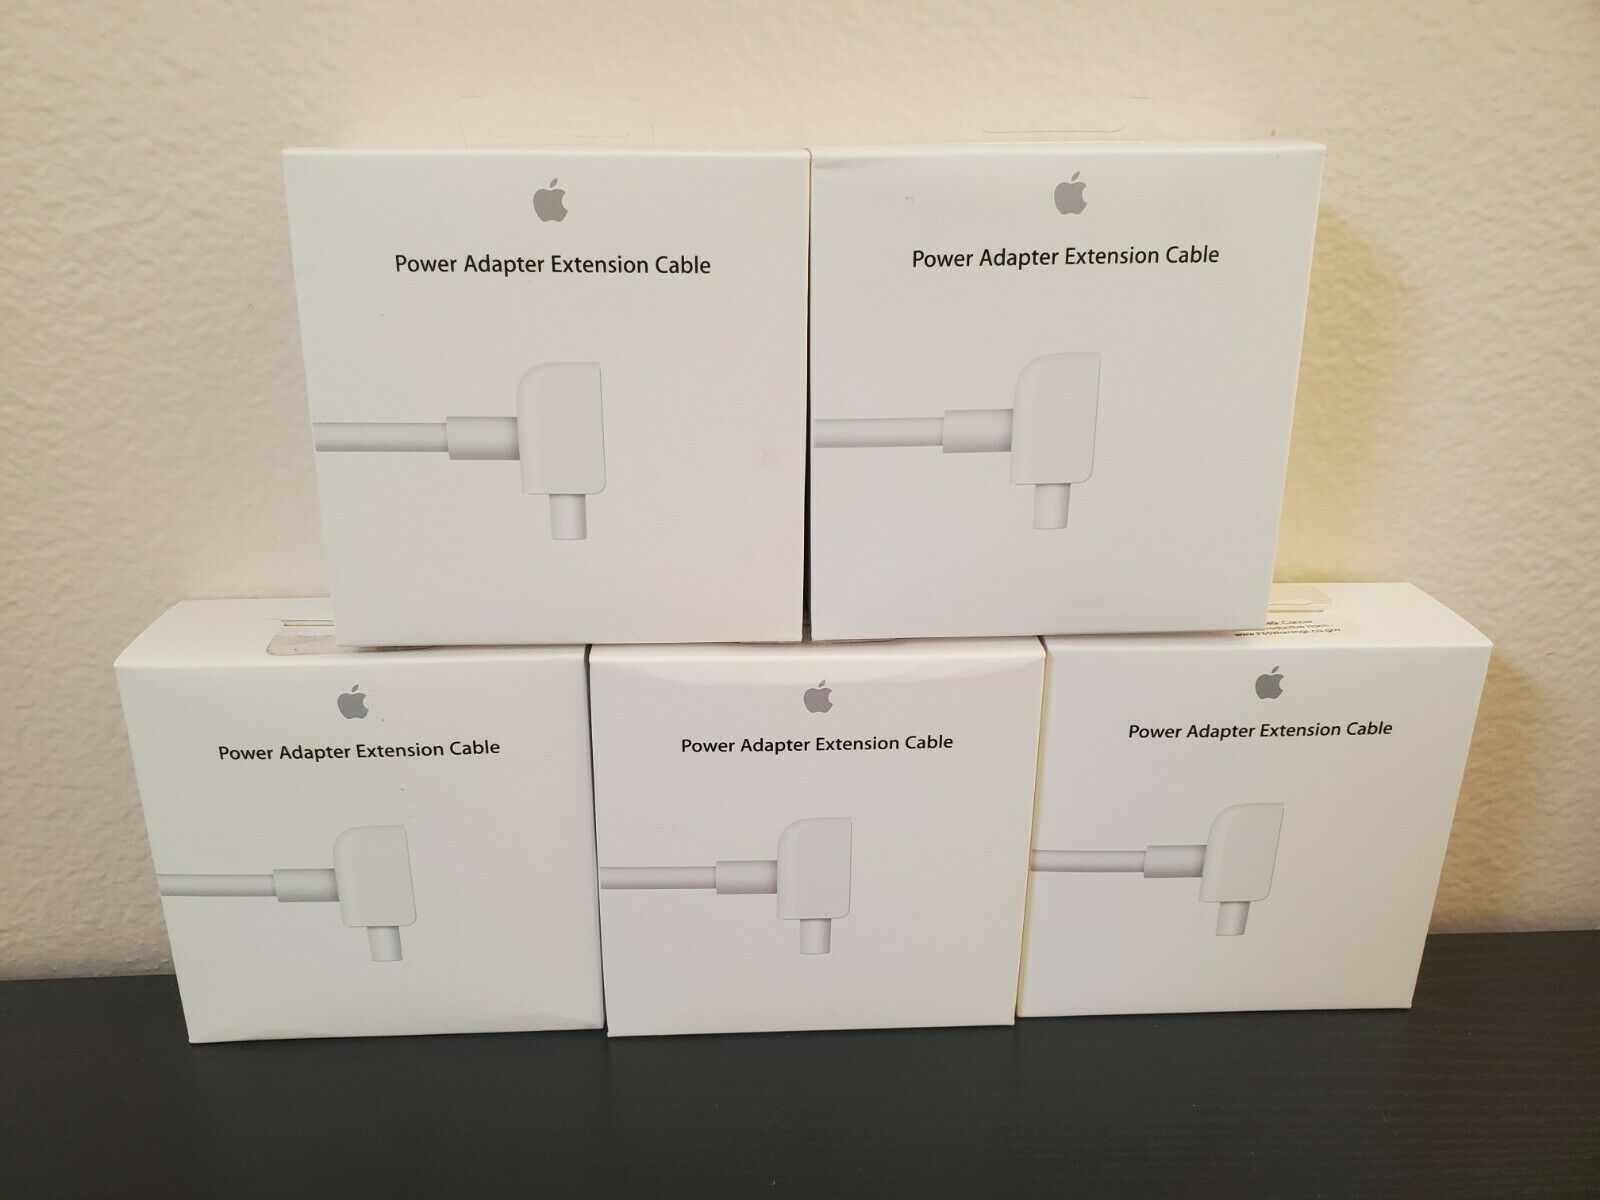 Apple Power Adapter Extension Cable - White MK122LL/A